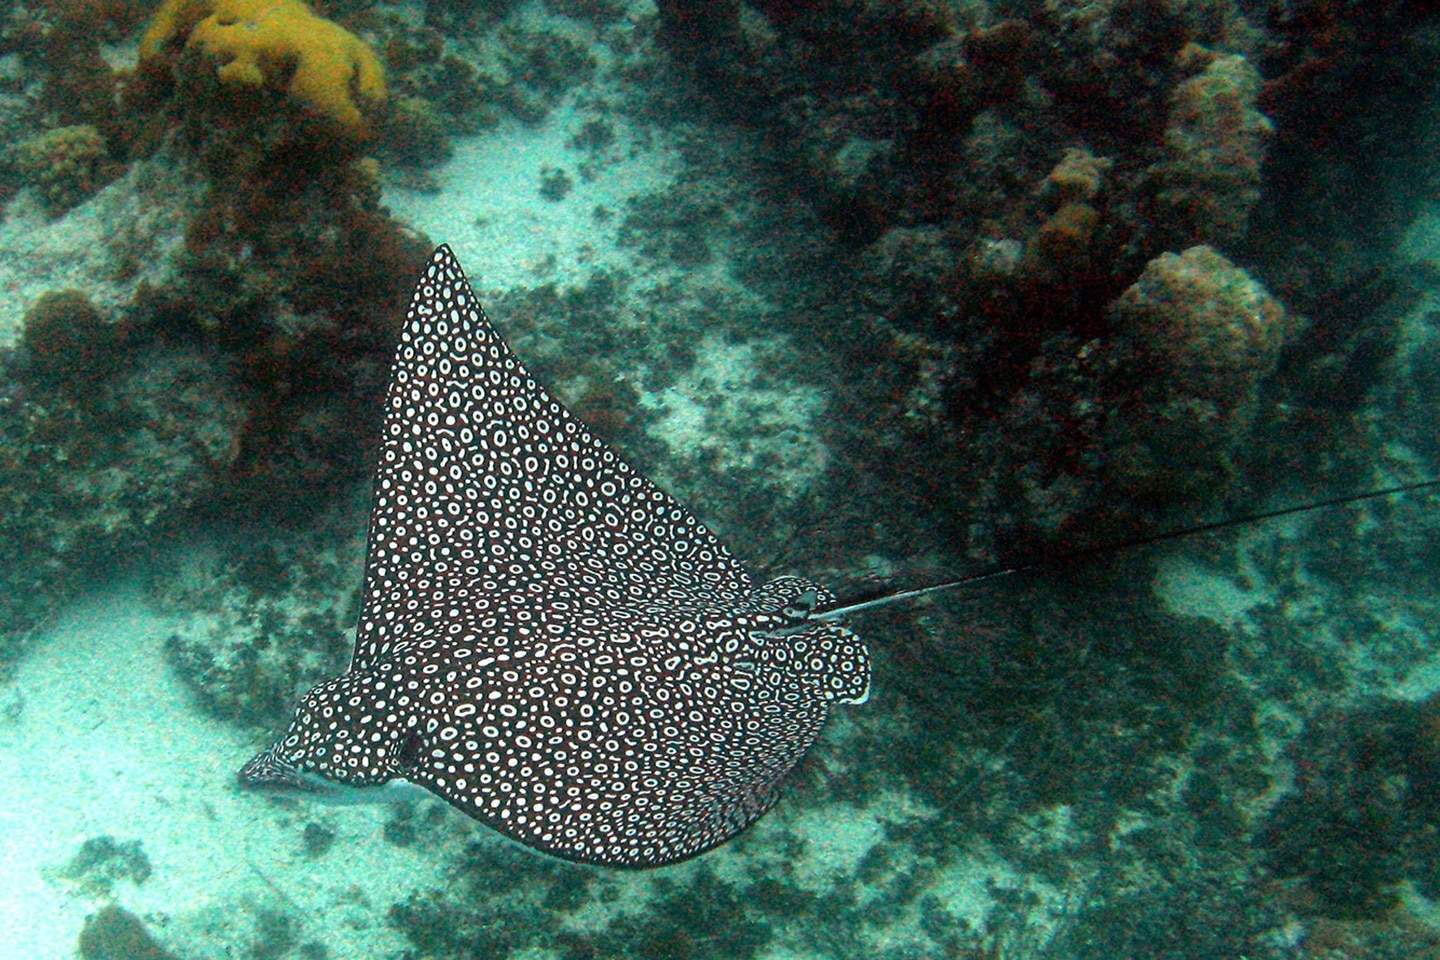 Eagle ray in Mexico spotted while snorkeling in Cozumel